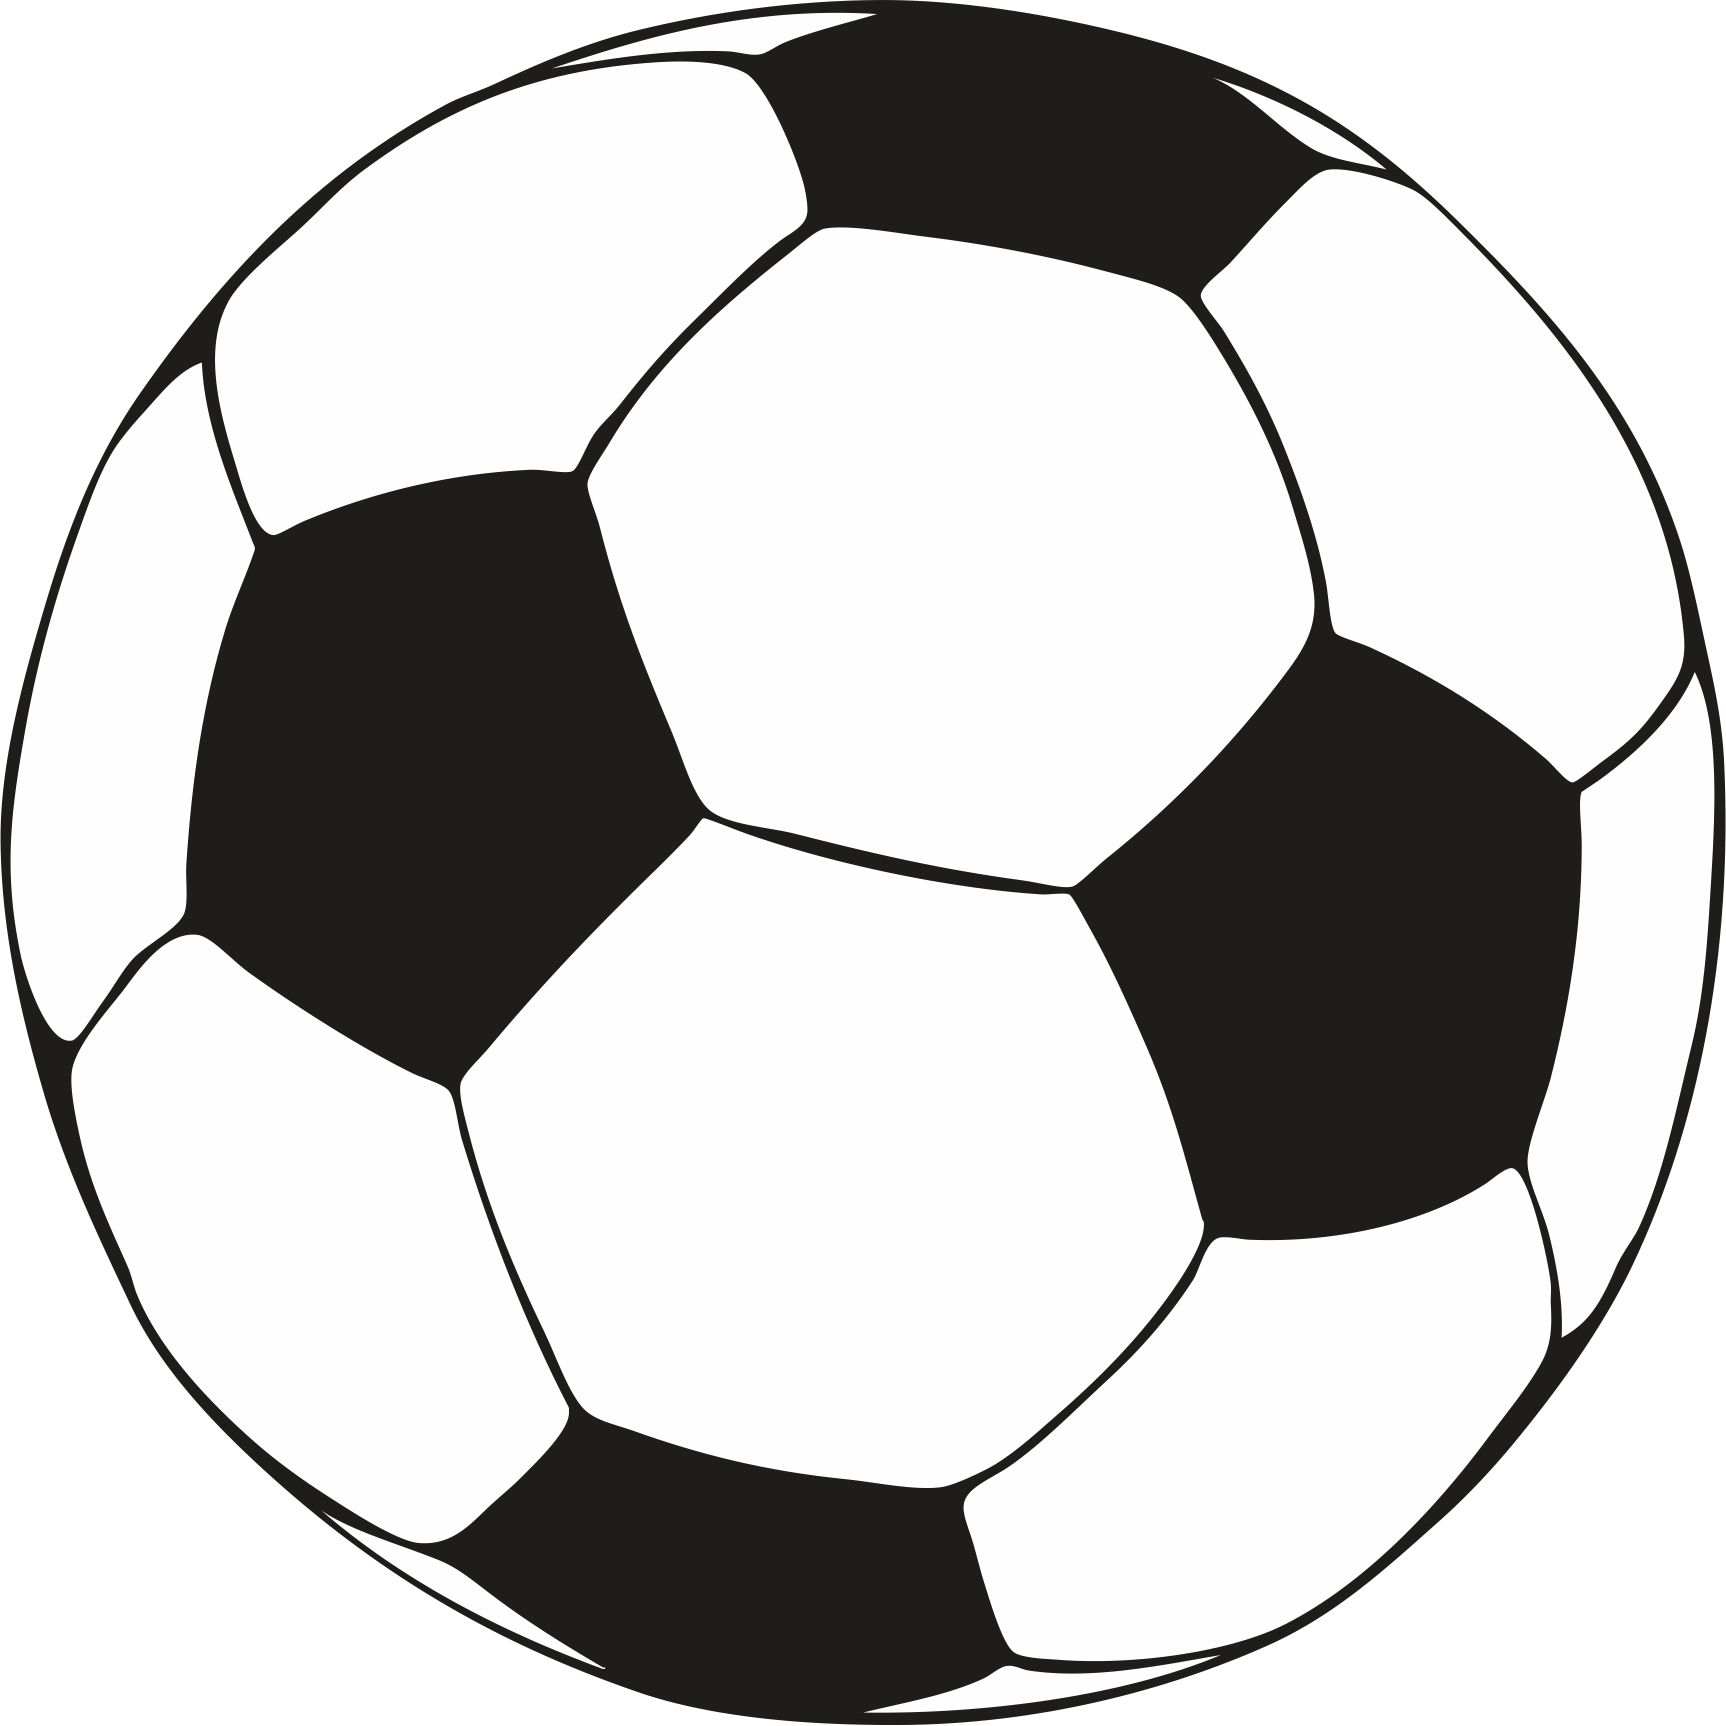 Amazing image with free printable soccer ball